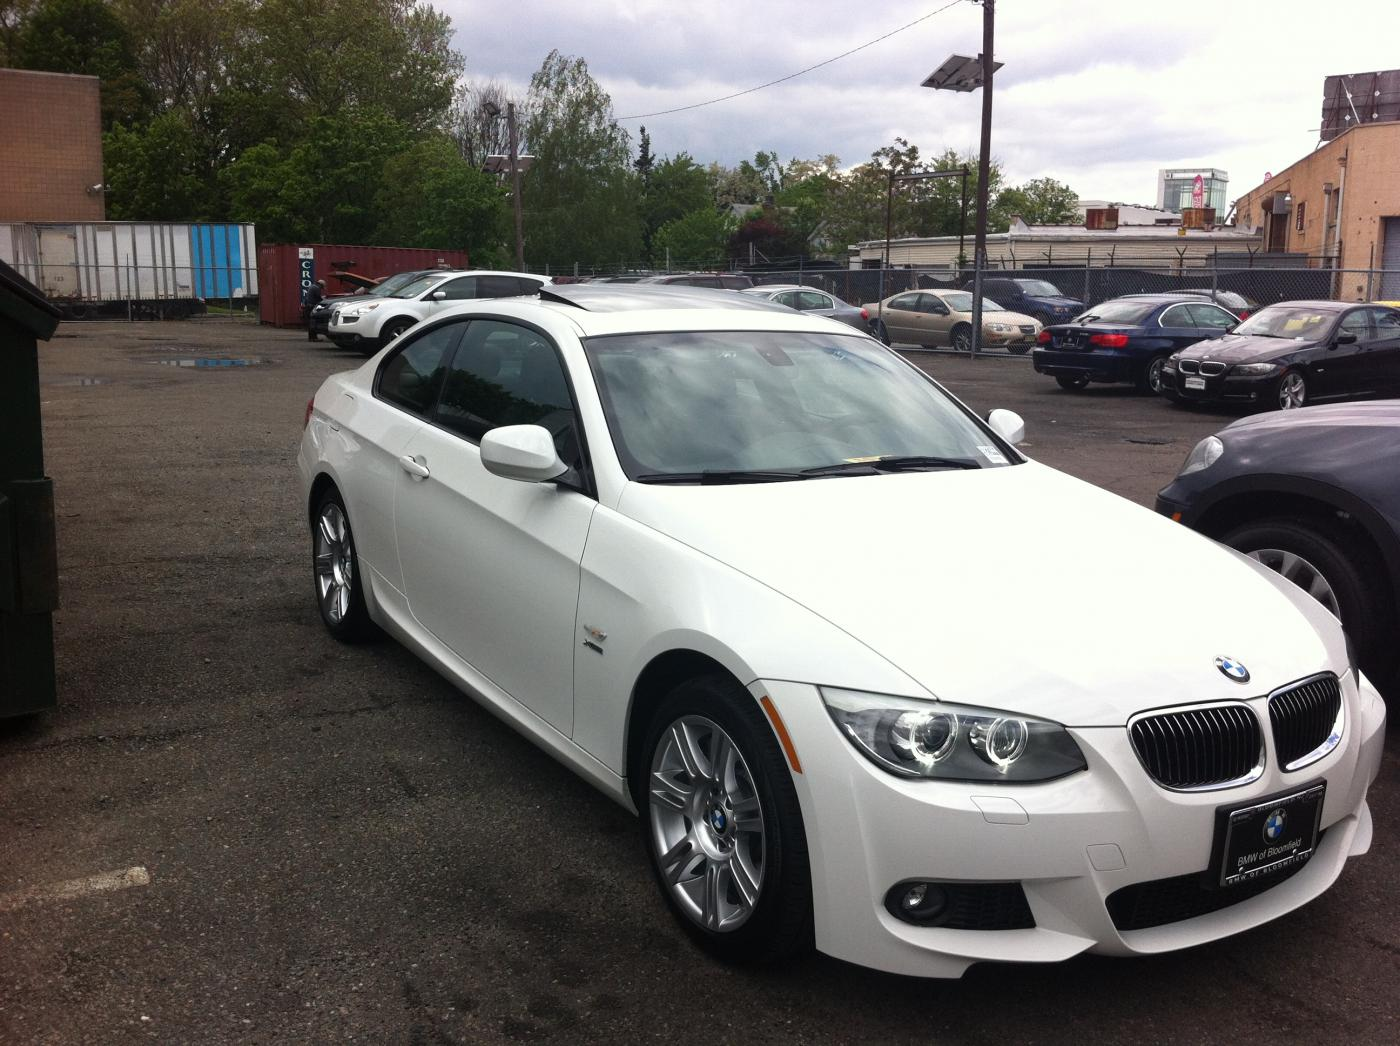 Test Drive BMW Xi Have You Met Zaider - 2010 bmw 335xi